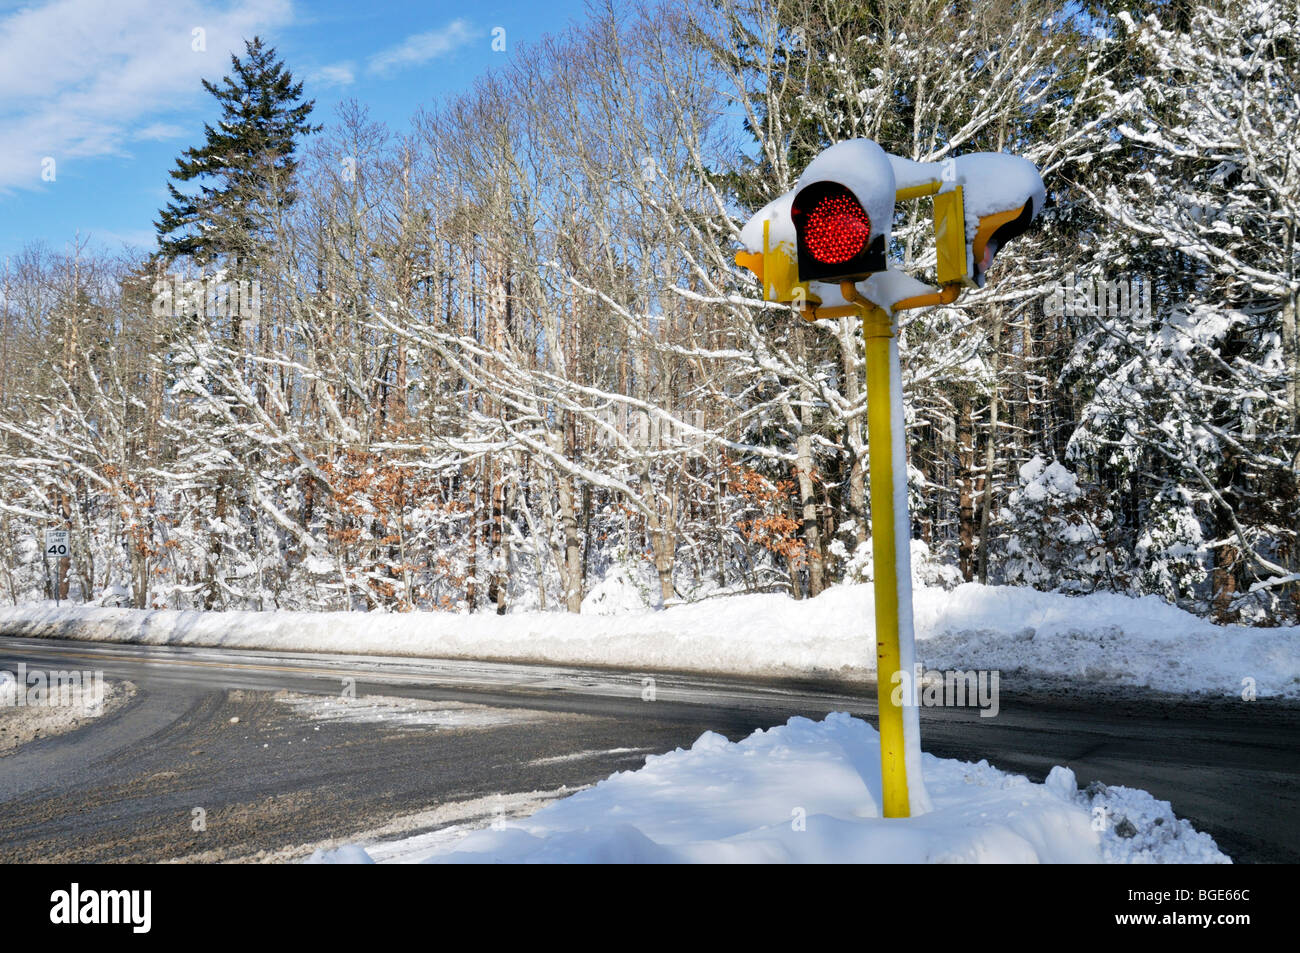 Red stoplight at intersection of a  snowy Cape Cod winter road on a sunny blue sky day. - Stock Image